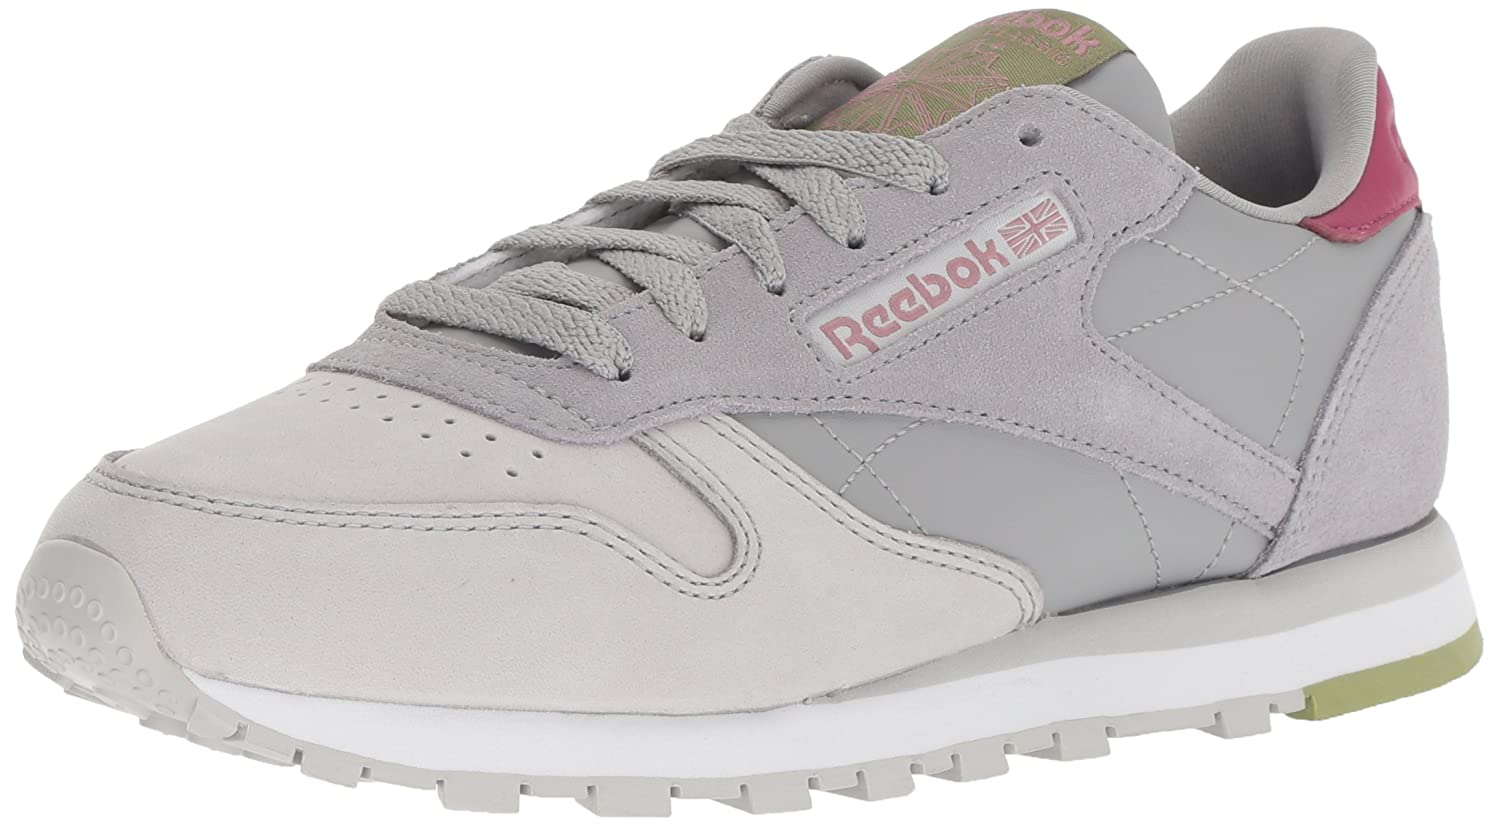 Cb-tin grau Skull grau Tw Reebok Classic Leather Turnschuhe